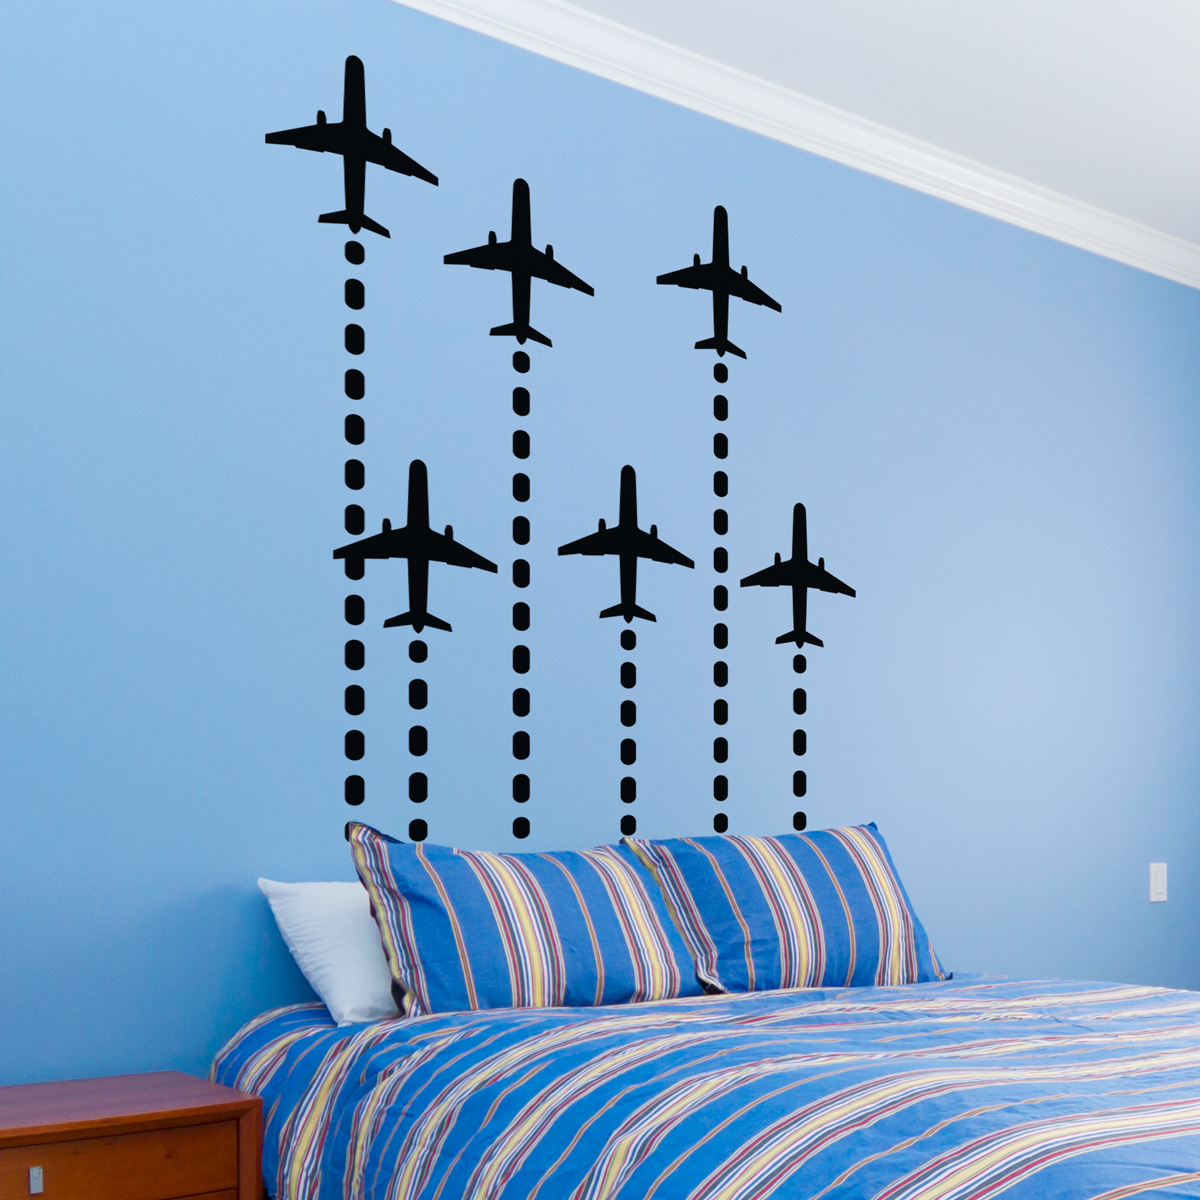 Charmant Rocket Planes Wall Decal